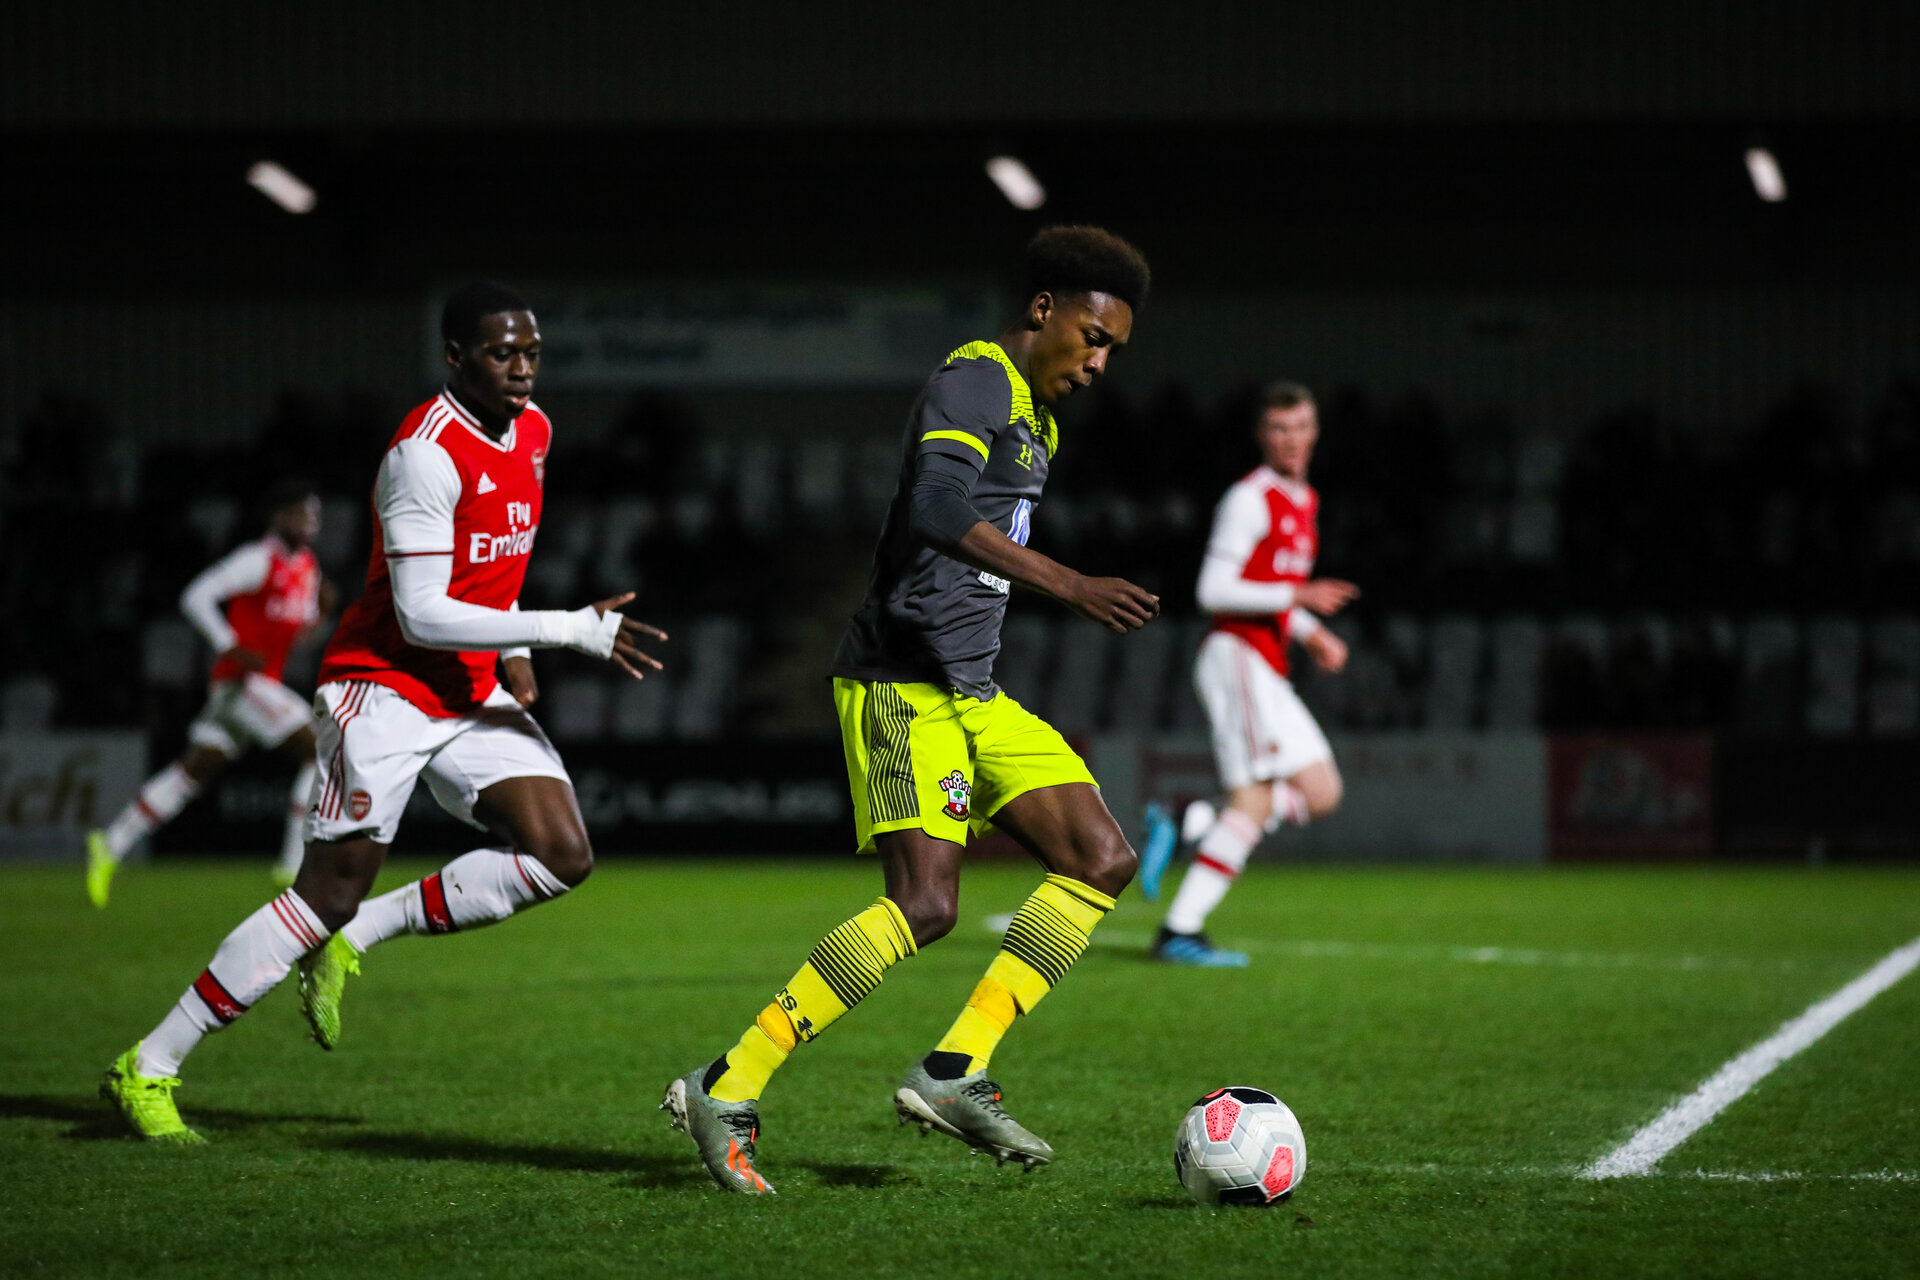 BOREHAMWOOD, ENGLAND - JANUARY 09: Ramello Mitchell of Southampton FC during the FA Youth Cup Fourth Round match between Arsenal U18s and Southampton FC U18s at Meadow Park on January 09, 2020 in Borehamwood, England